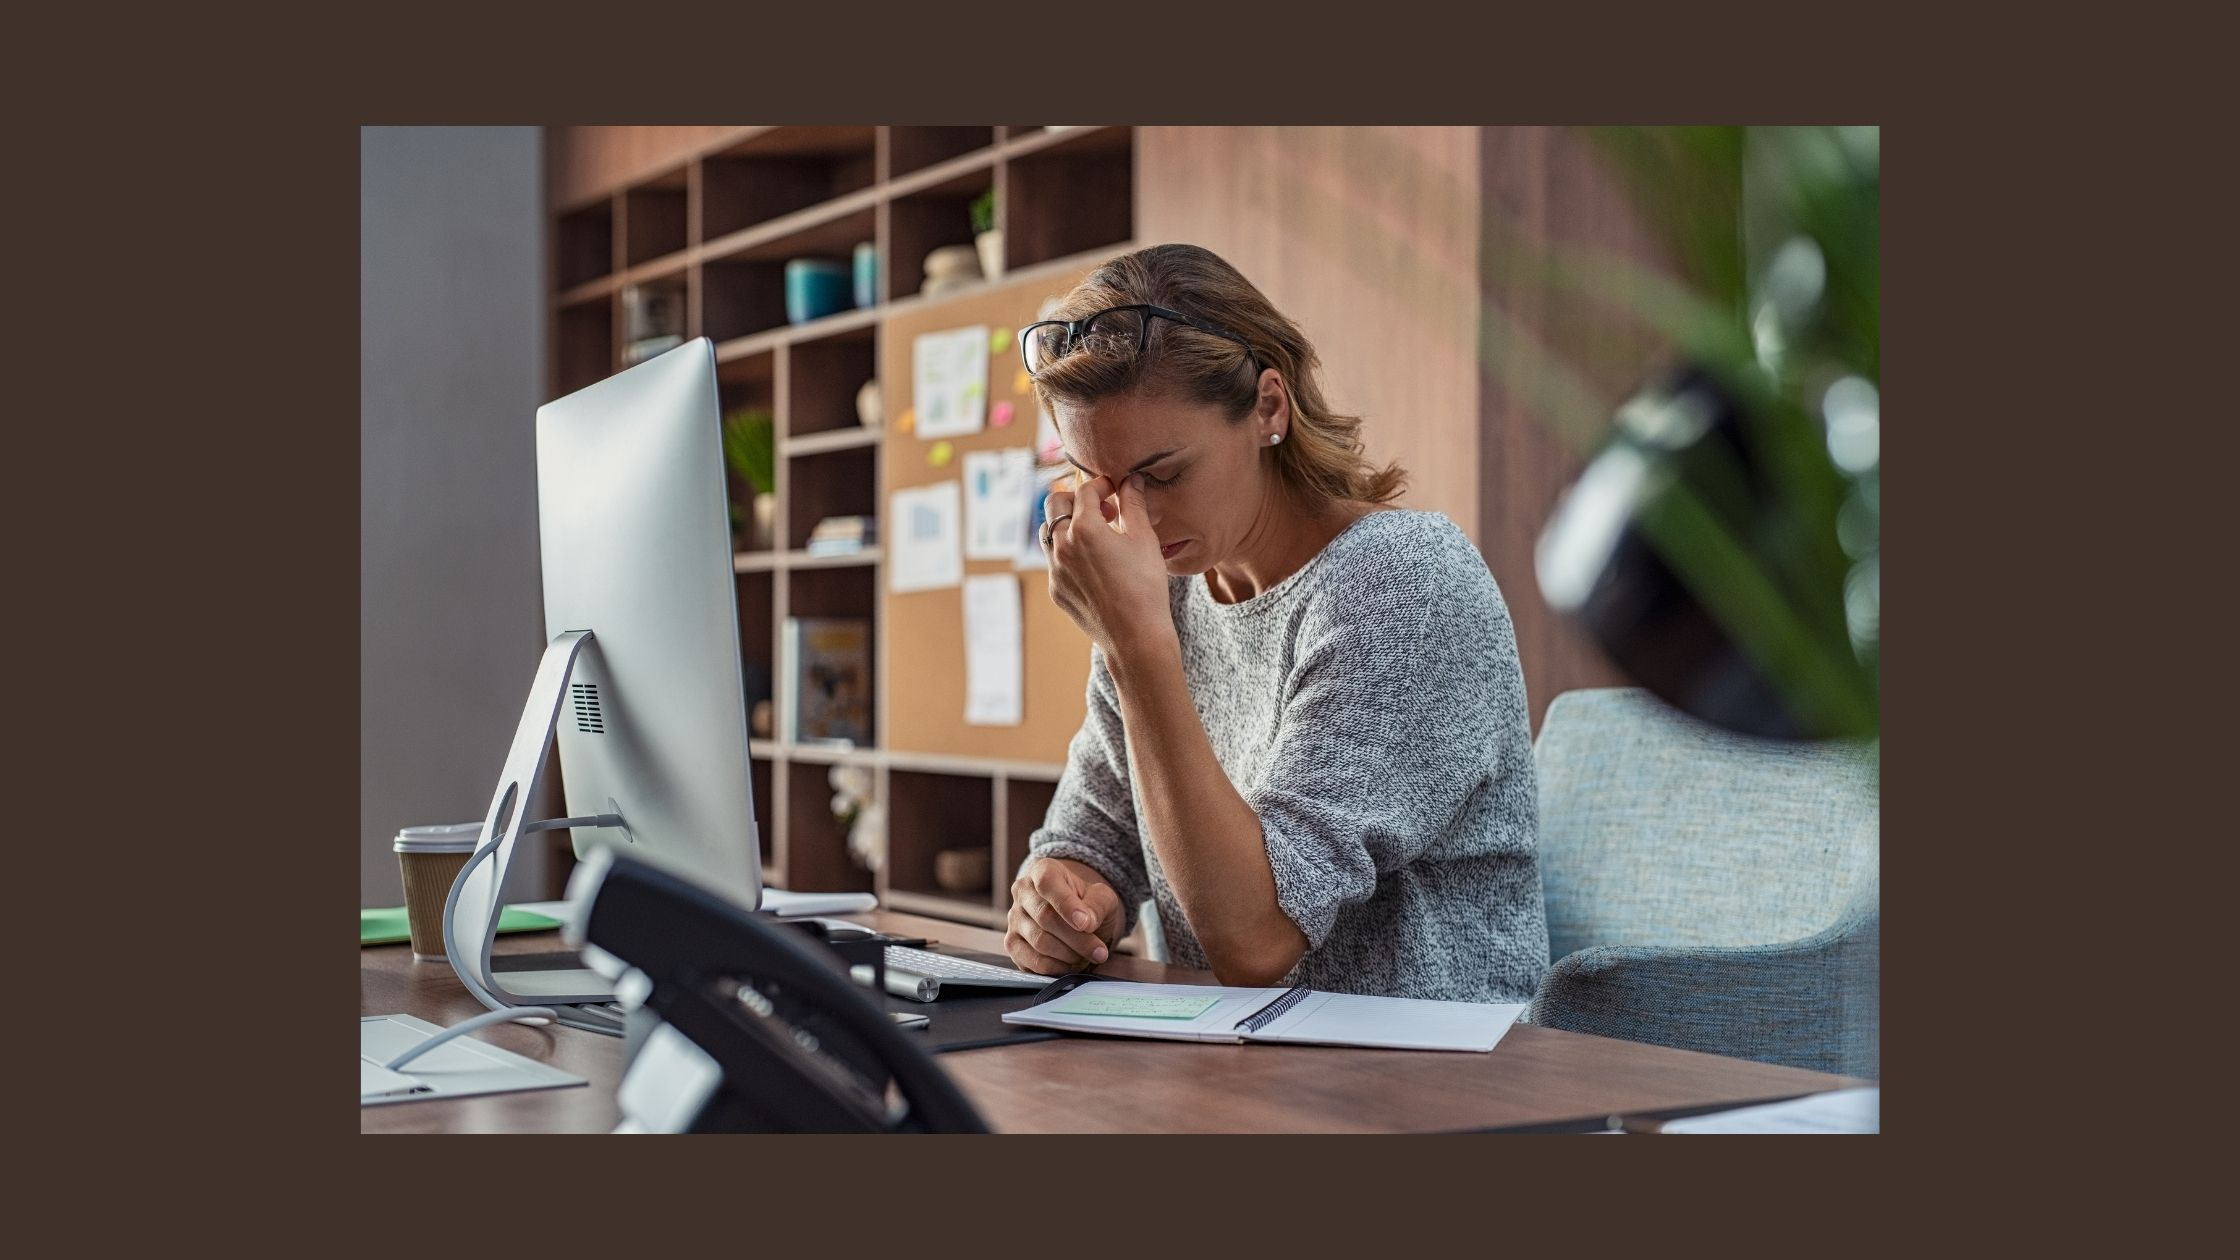 person at desk looking tired and overwhelmed